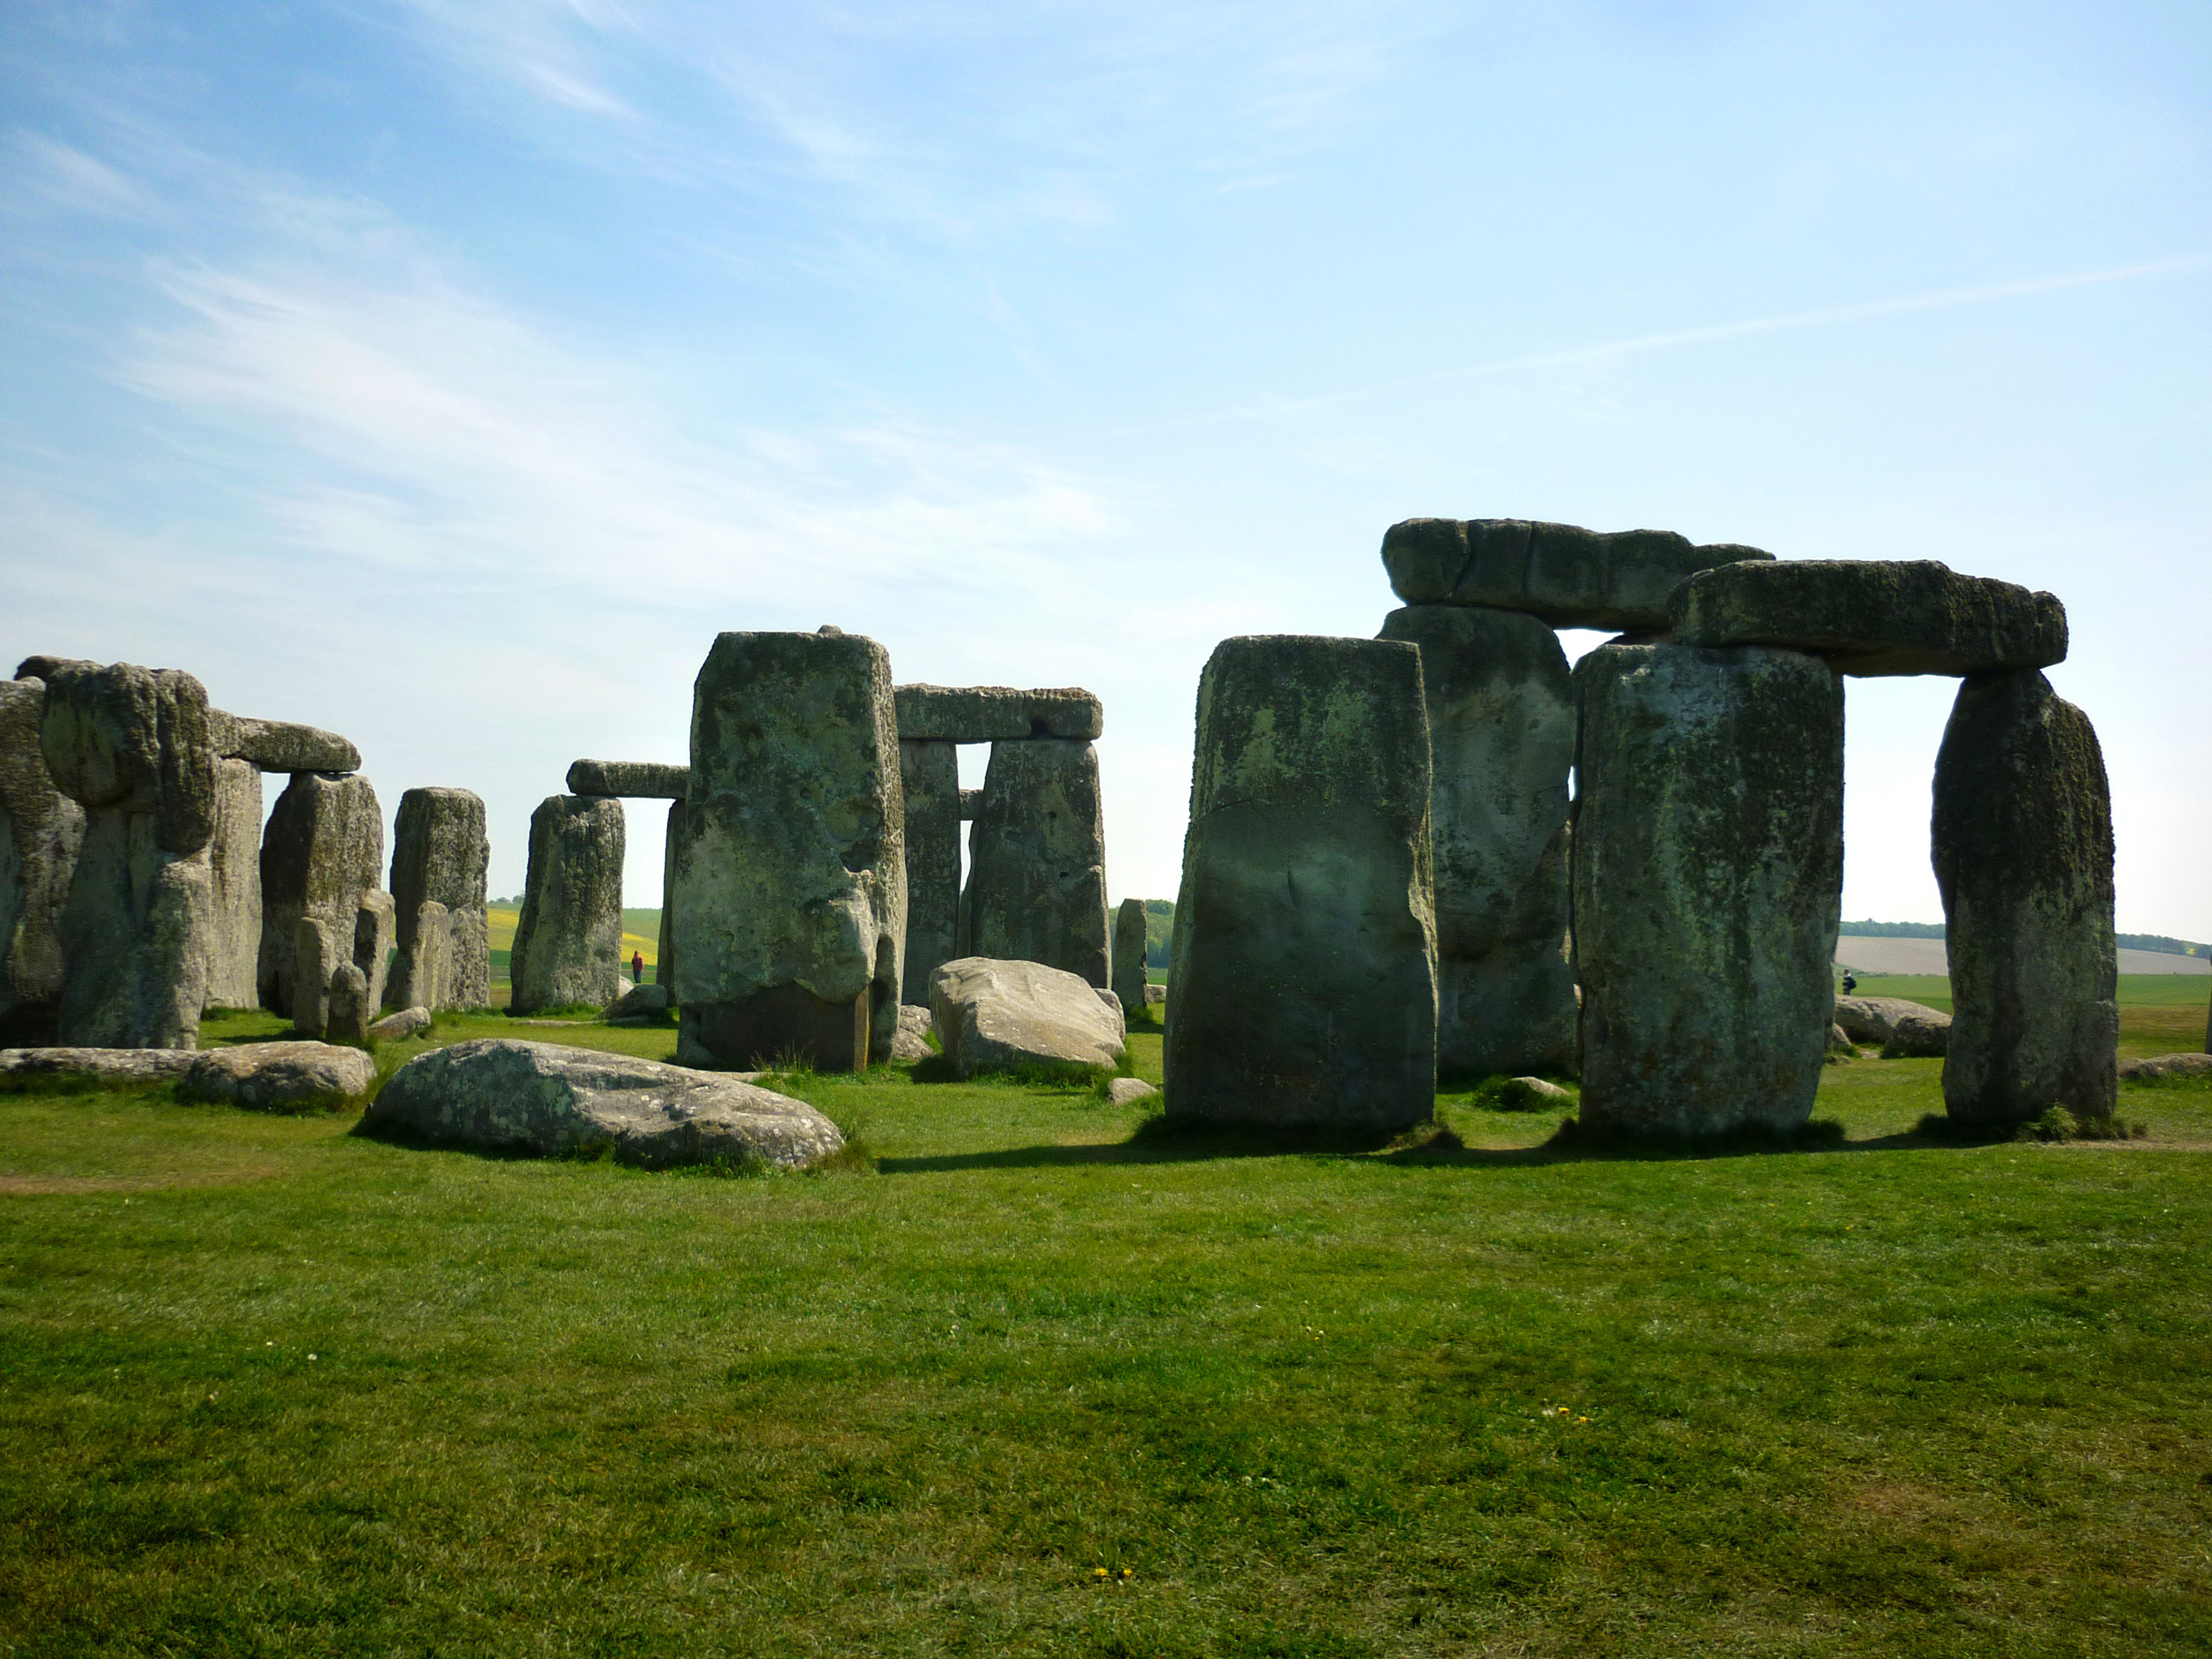 standing stones of the famous wiltshire landmark, stonehenge